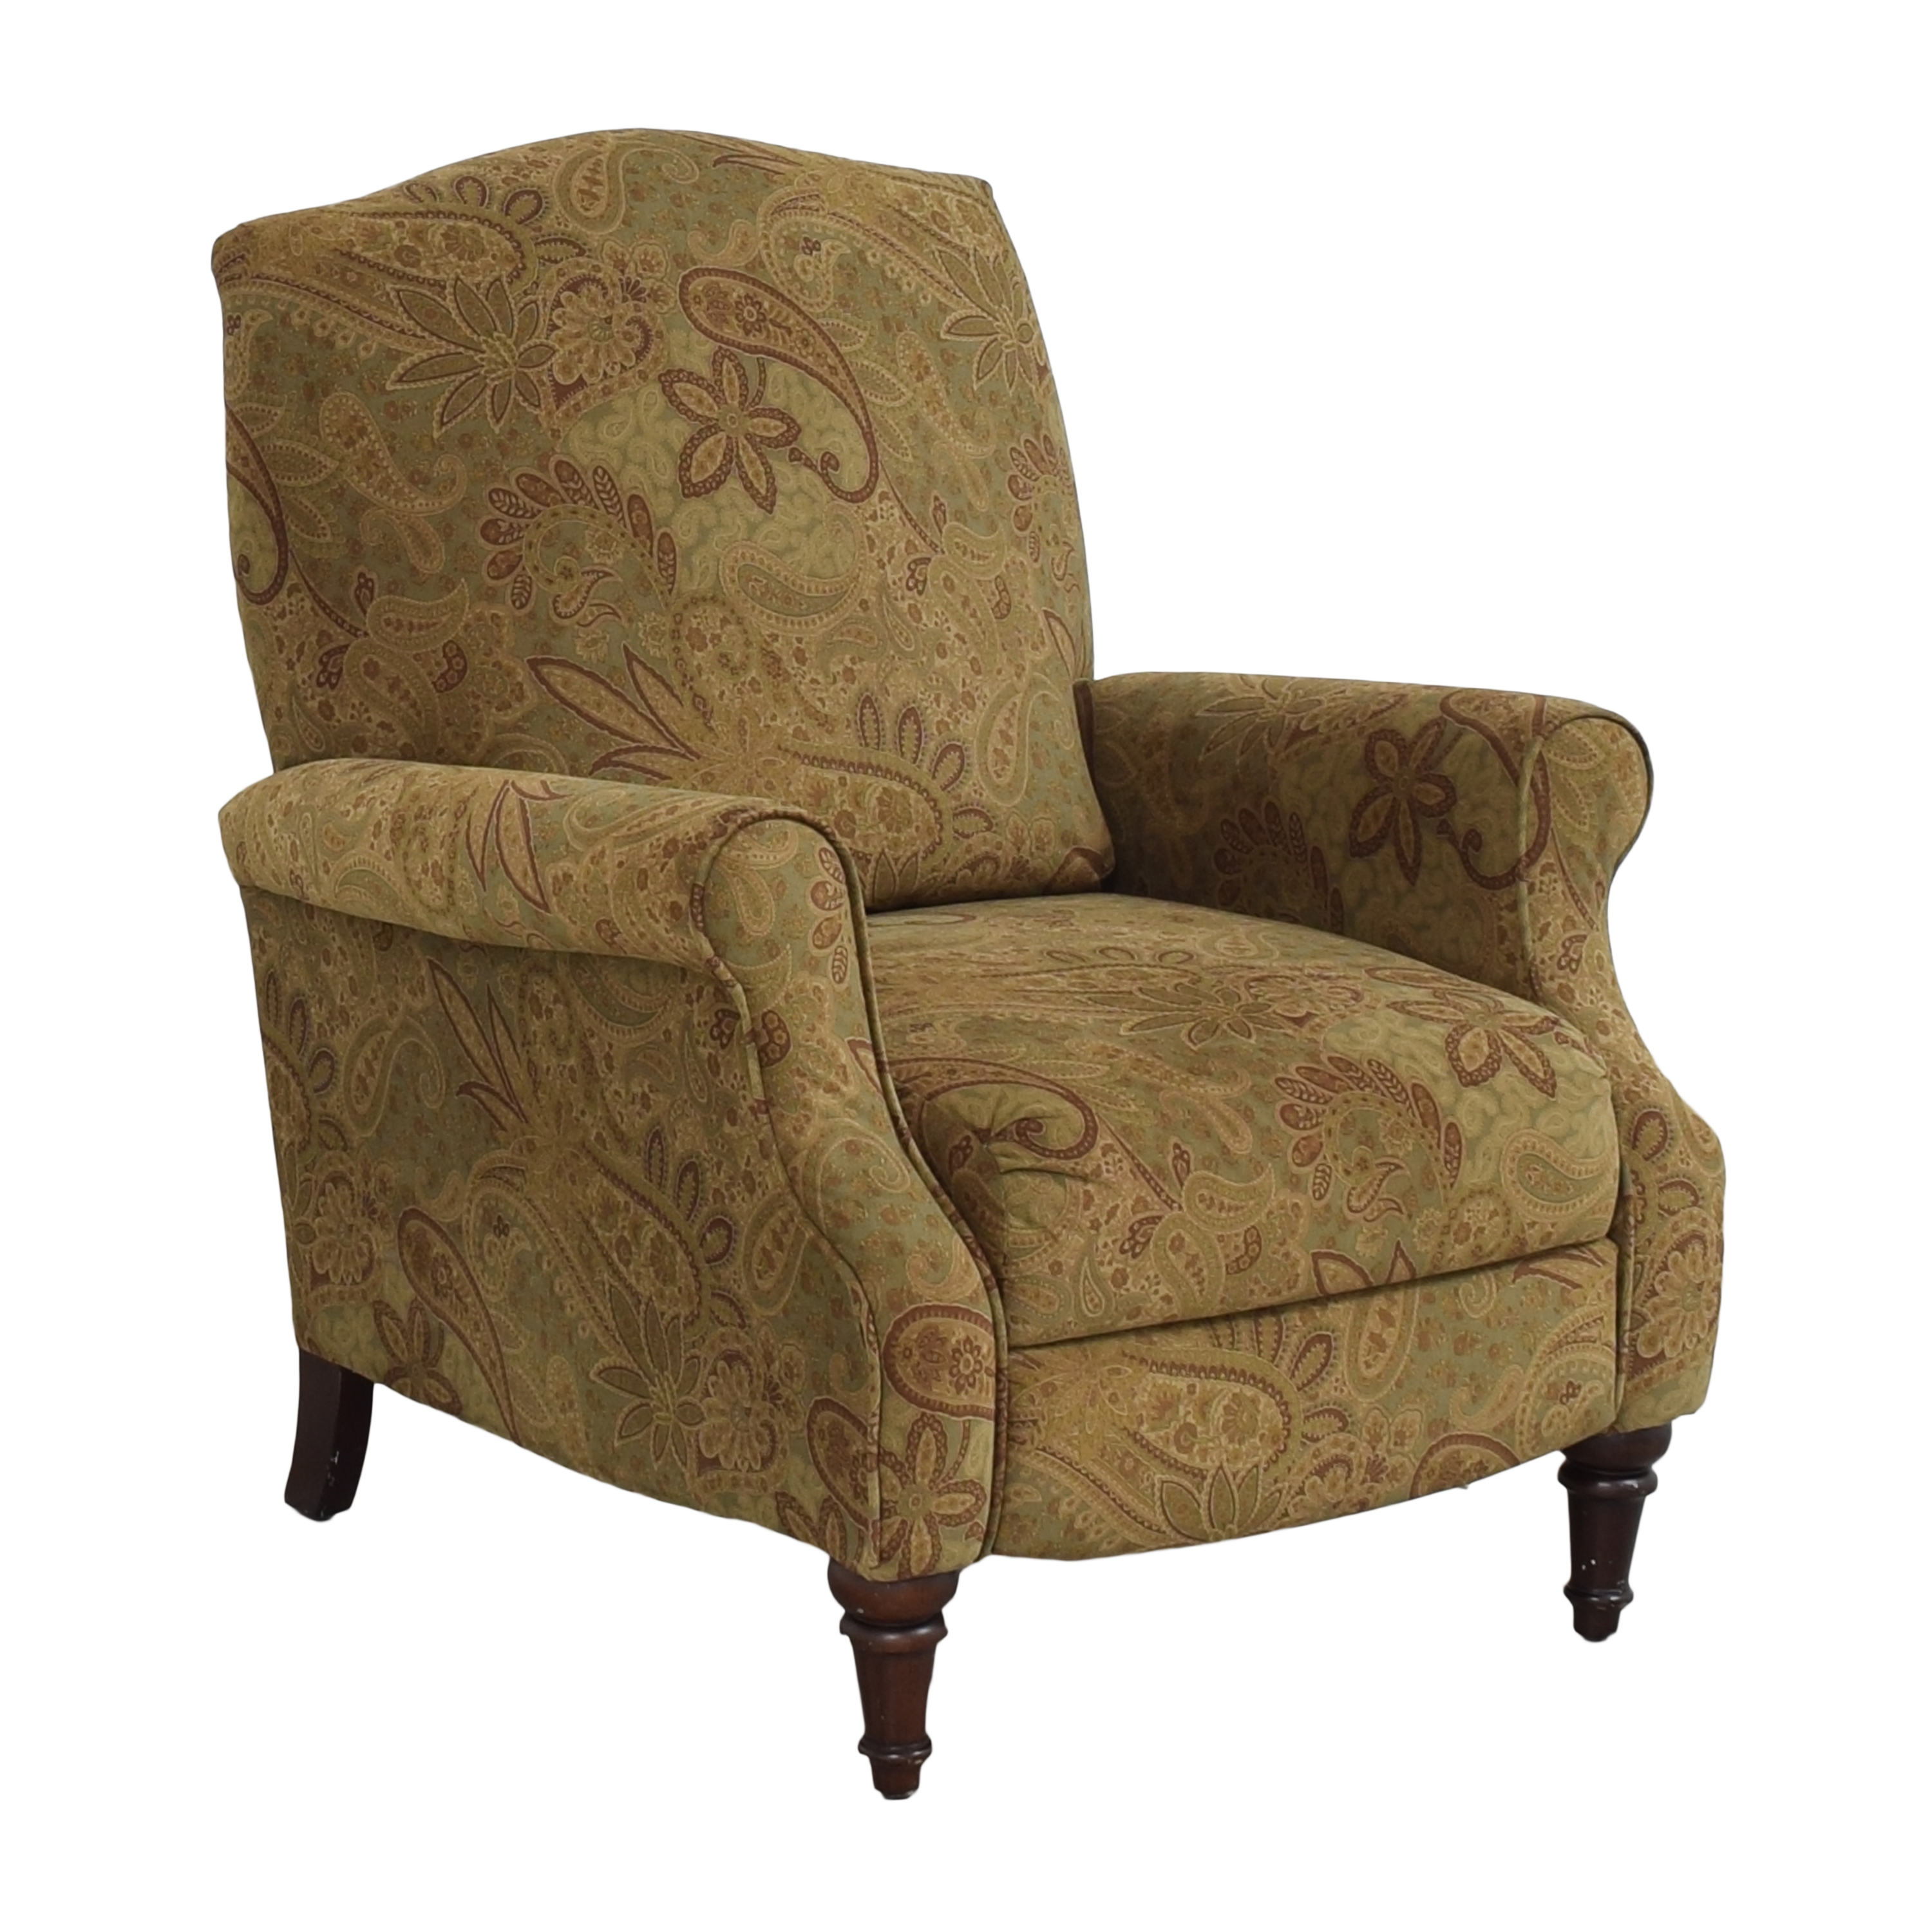 Lane Home Furnishings Lane Home Ramsey Recliner price